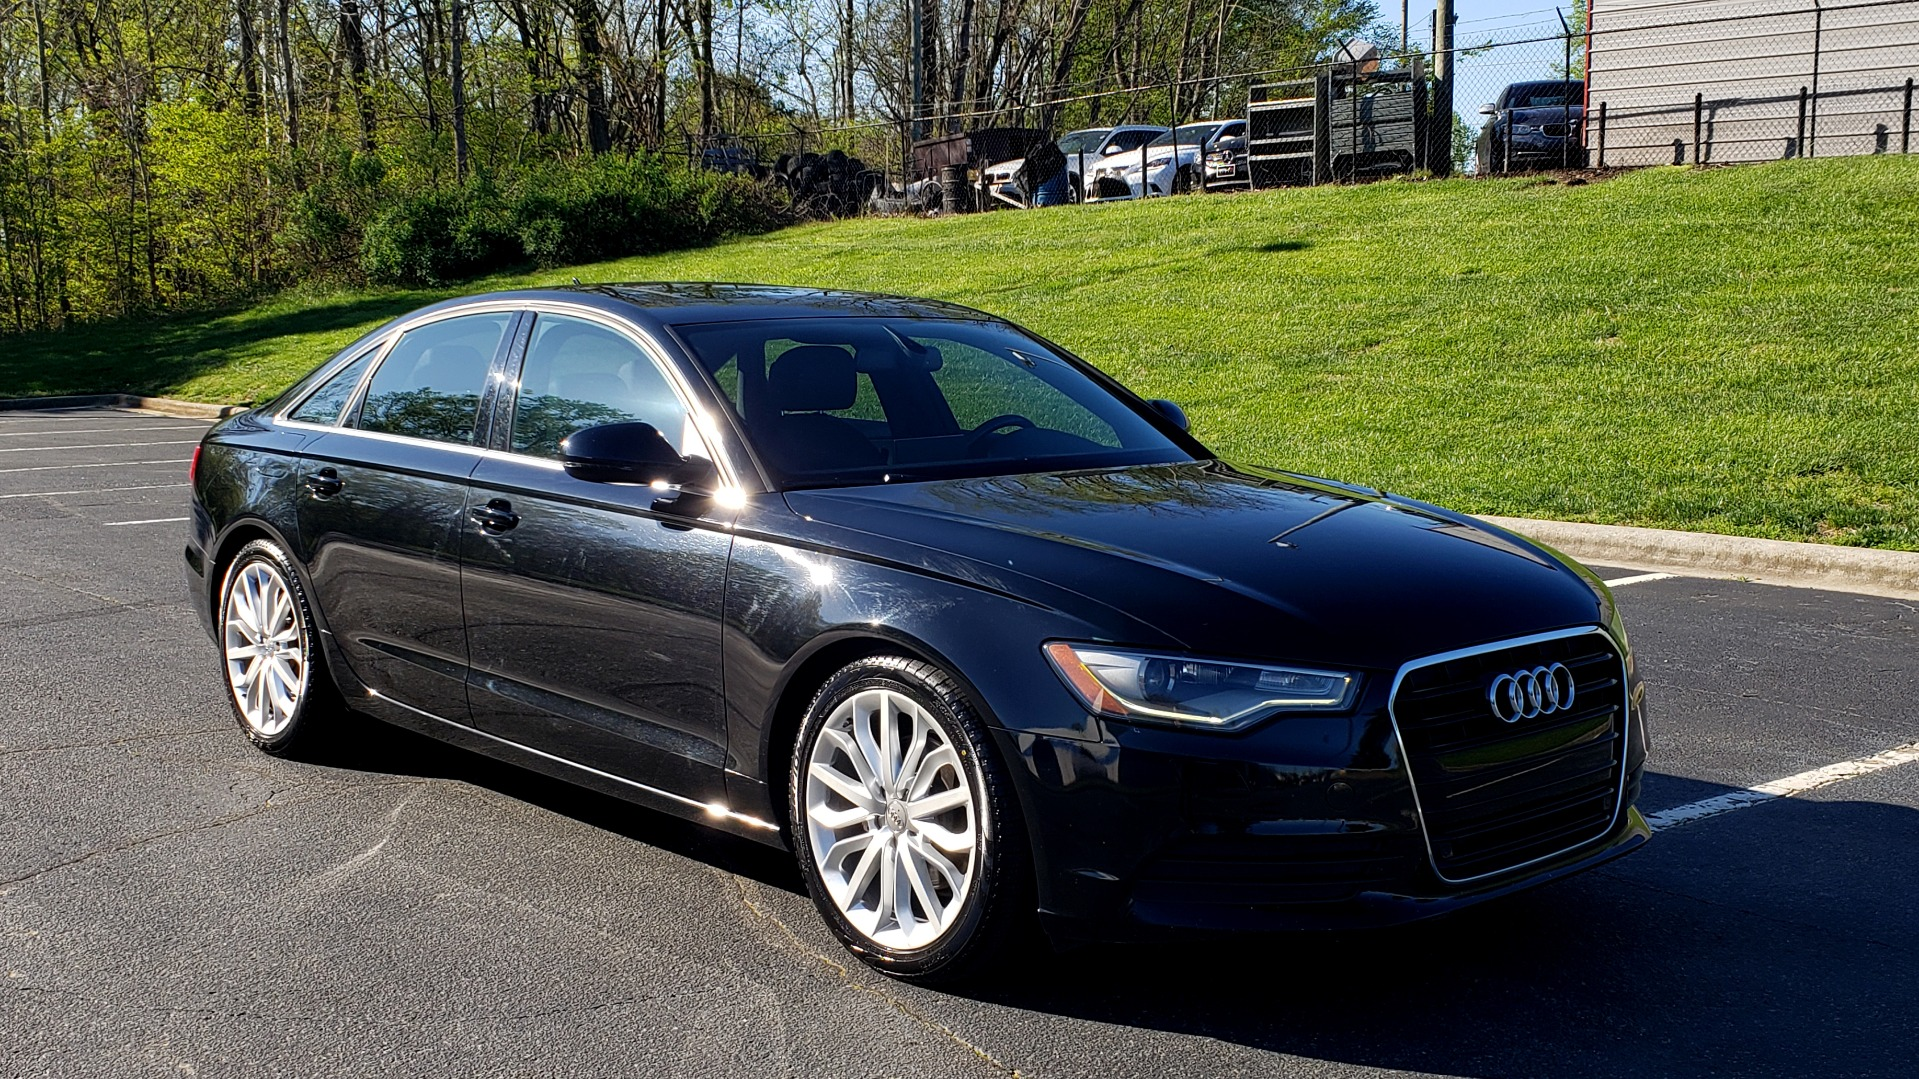 Used 2012 Audi A6 2.0T PREMIUM PLUS / NAV / SNRF / CVT TRANS / REARVIEW for sale Sold at Formula Imports in Charlotte NC 28227 11